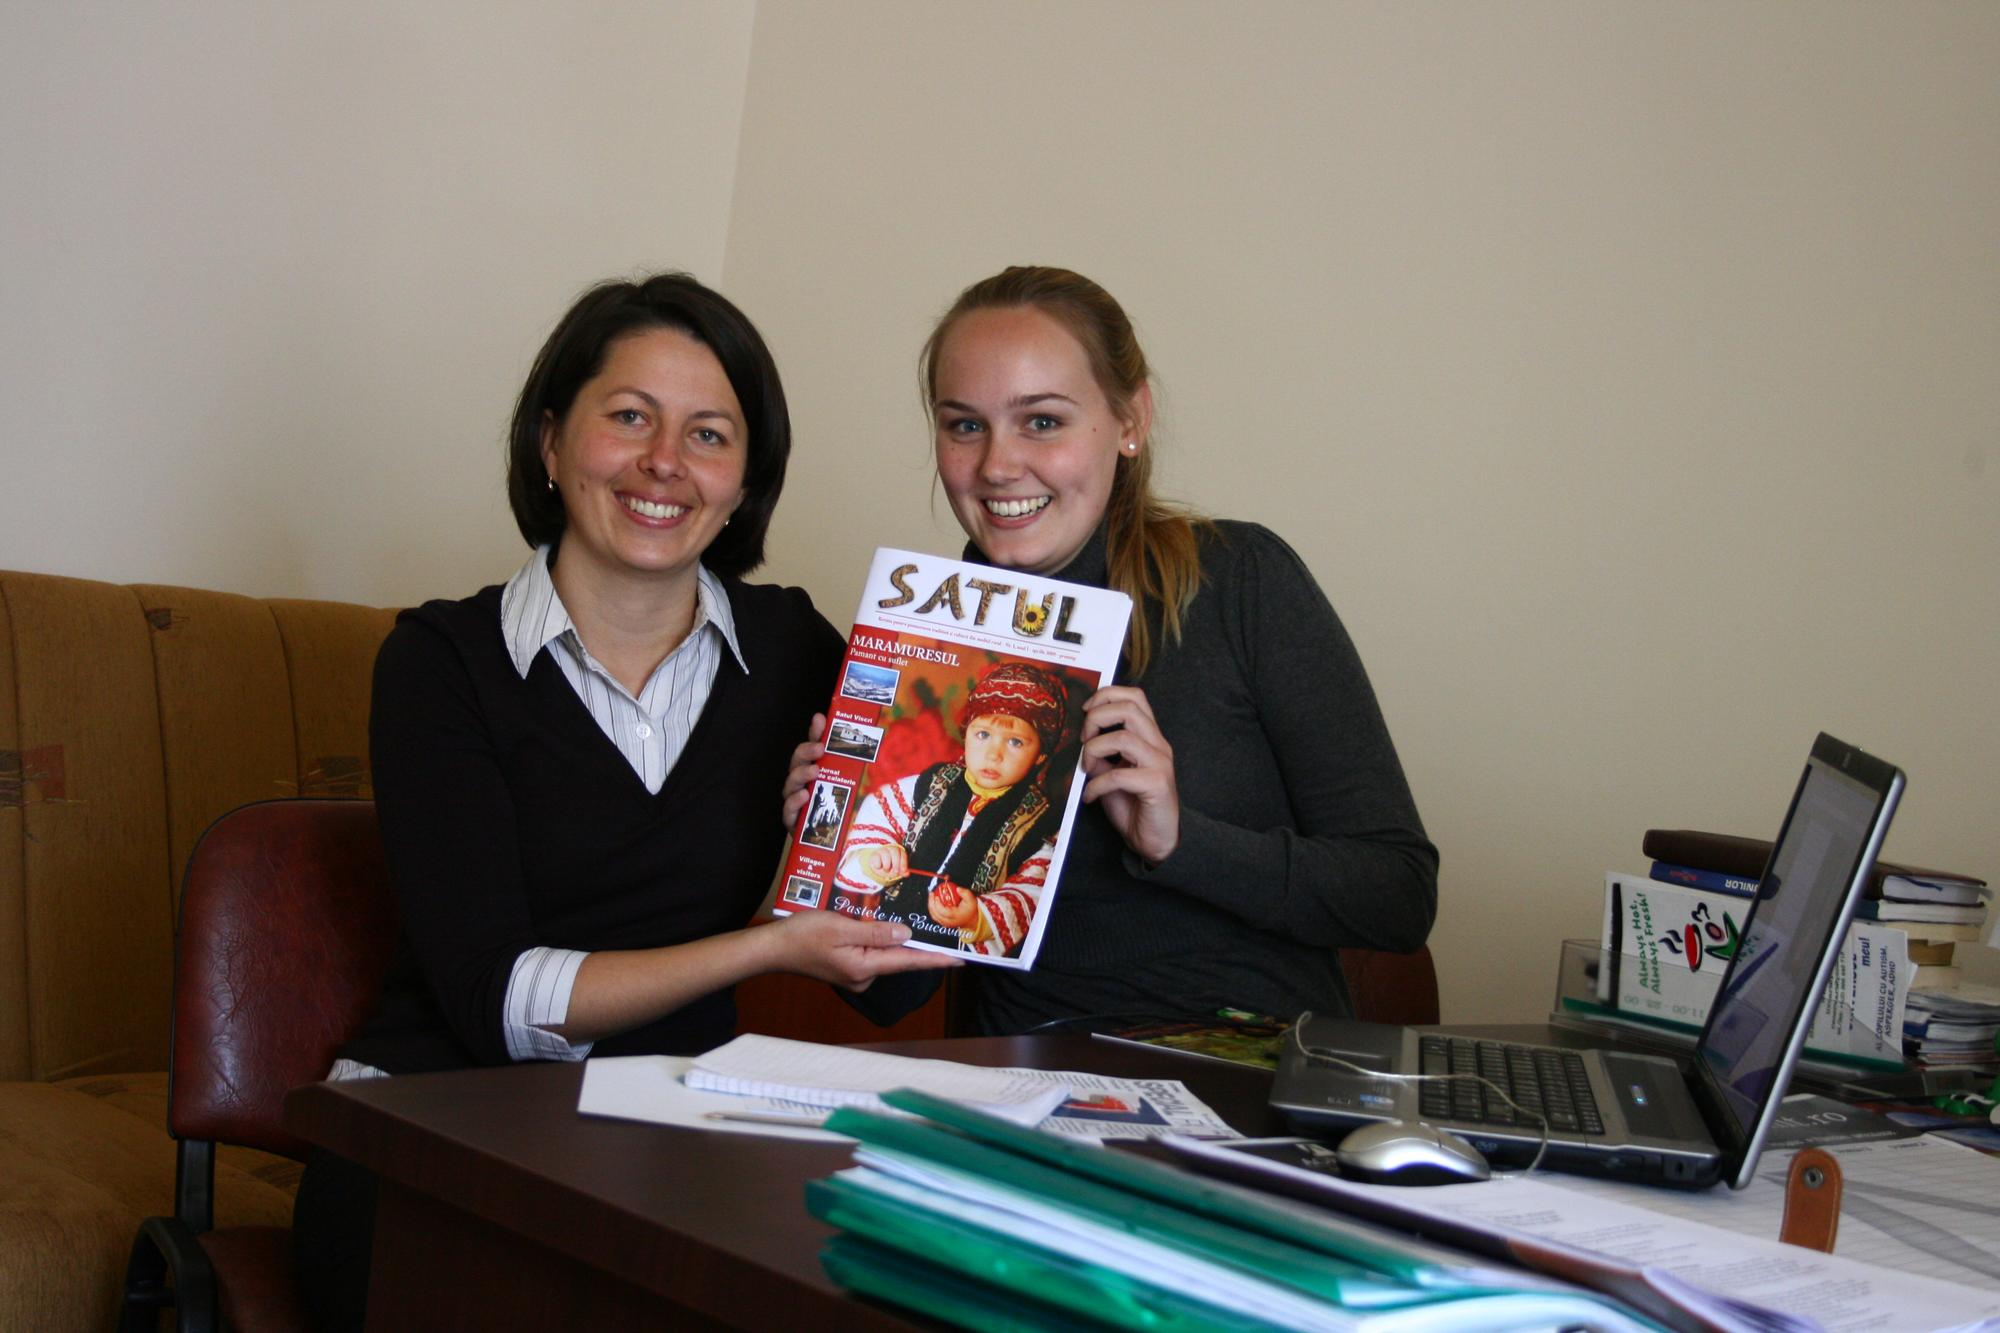 An intern holds up a magazine at a journalism placement in Romania